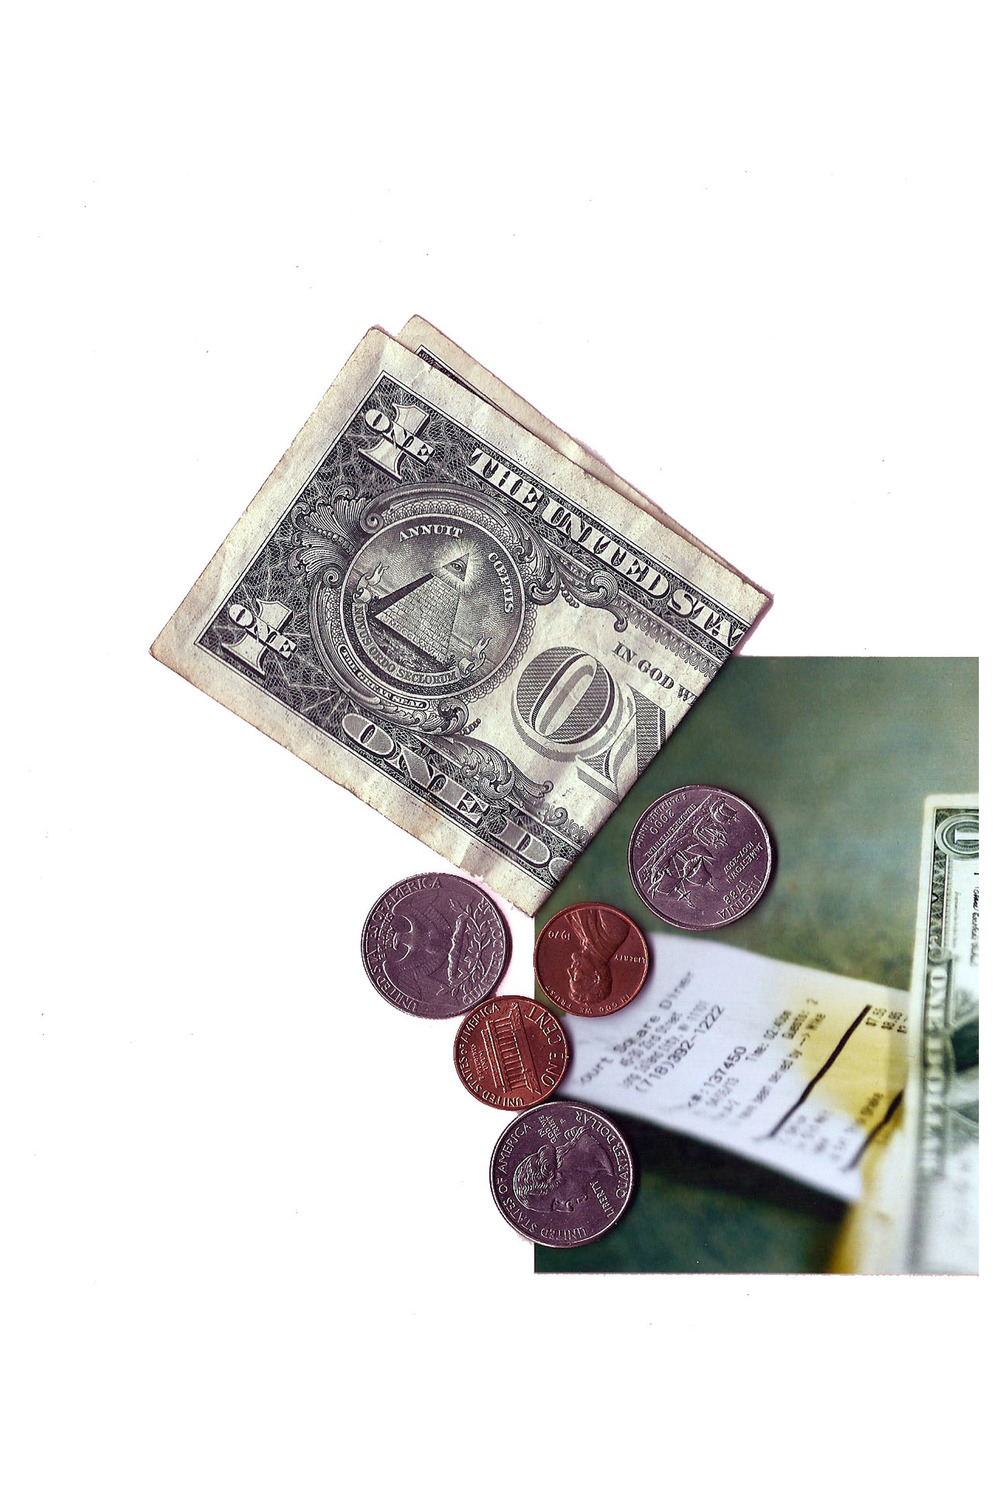 2014-New York-Dollars-and-Dimes-collage18x12.jpg